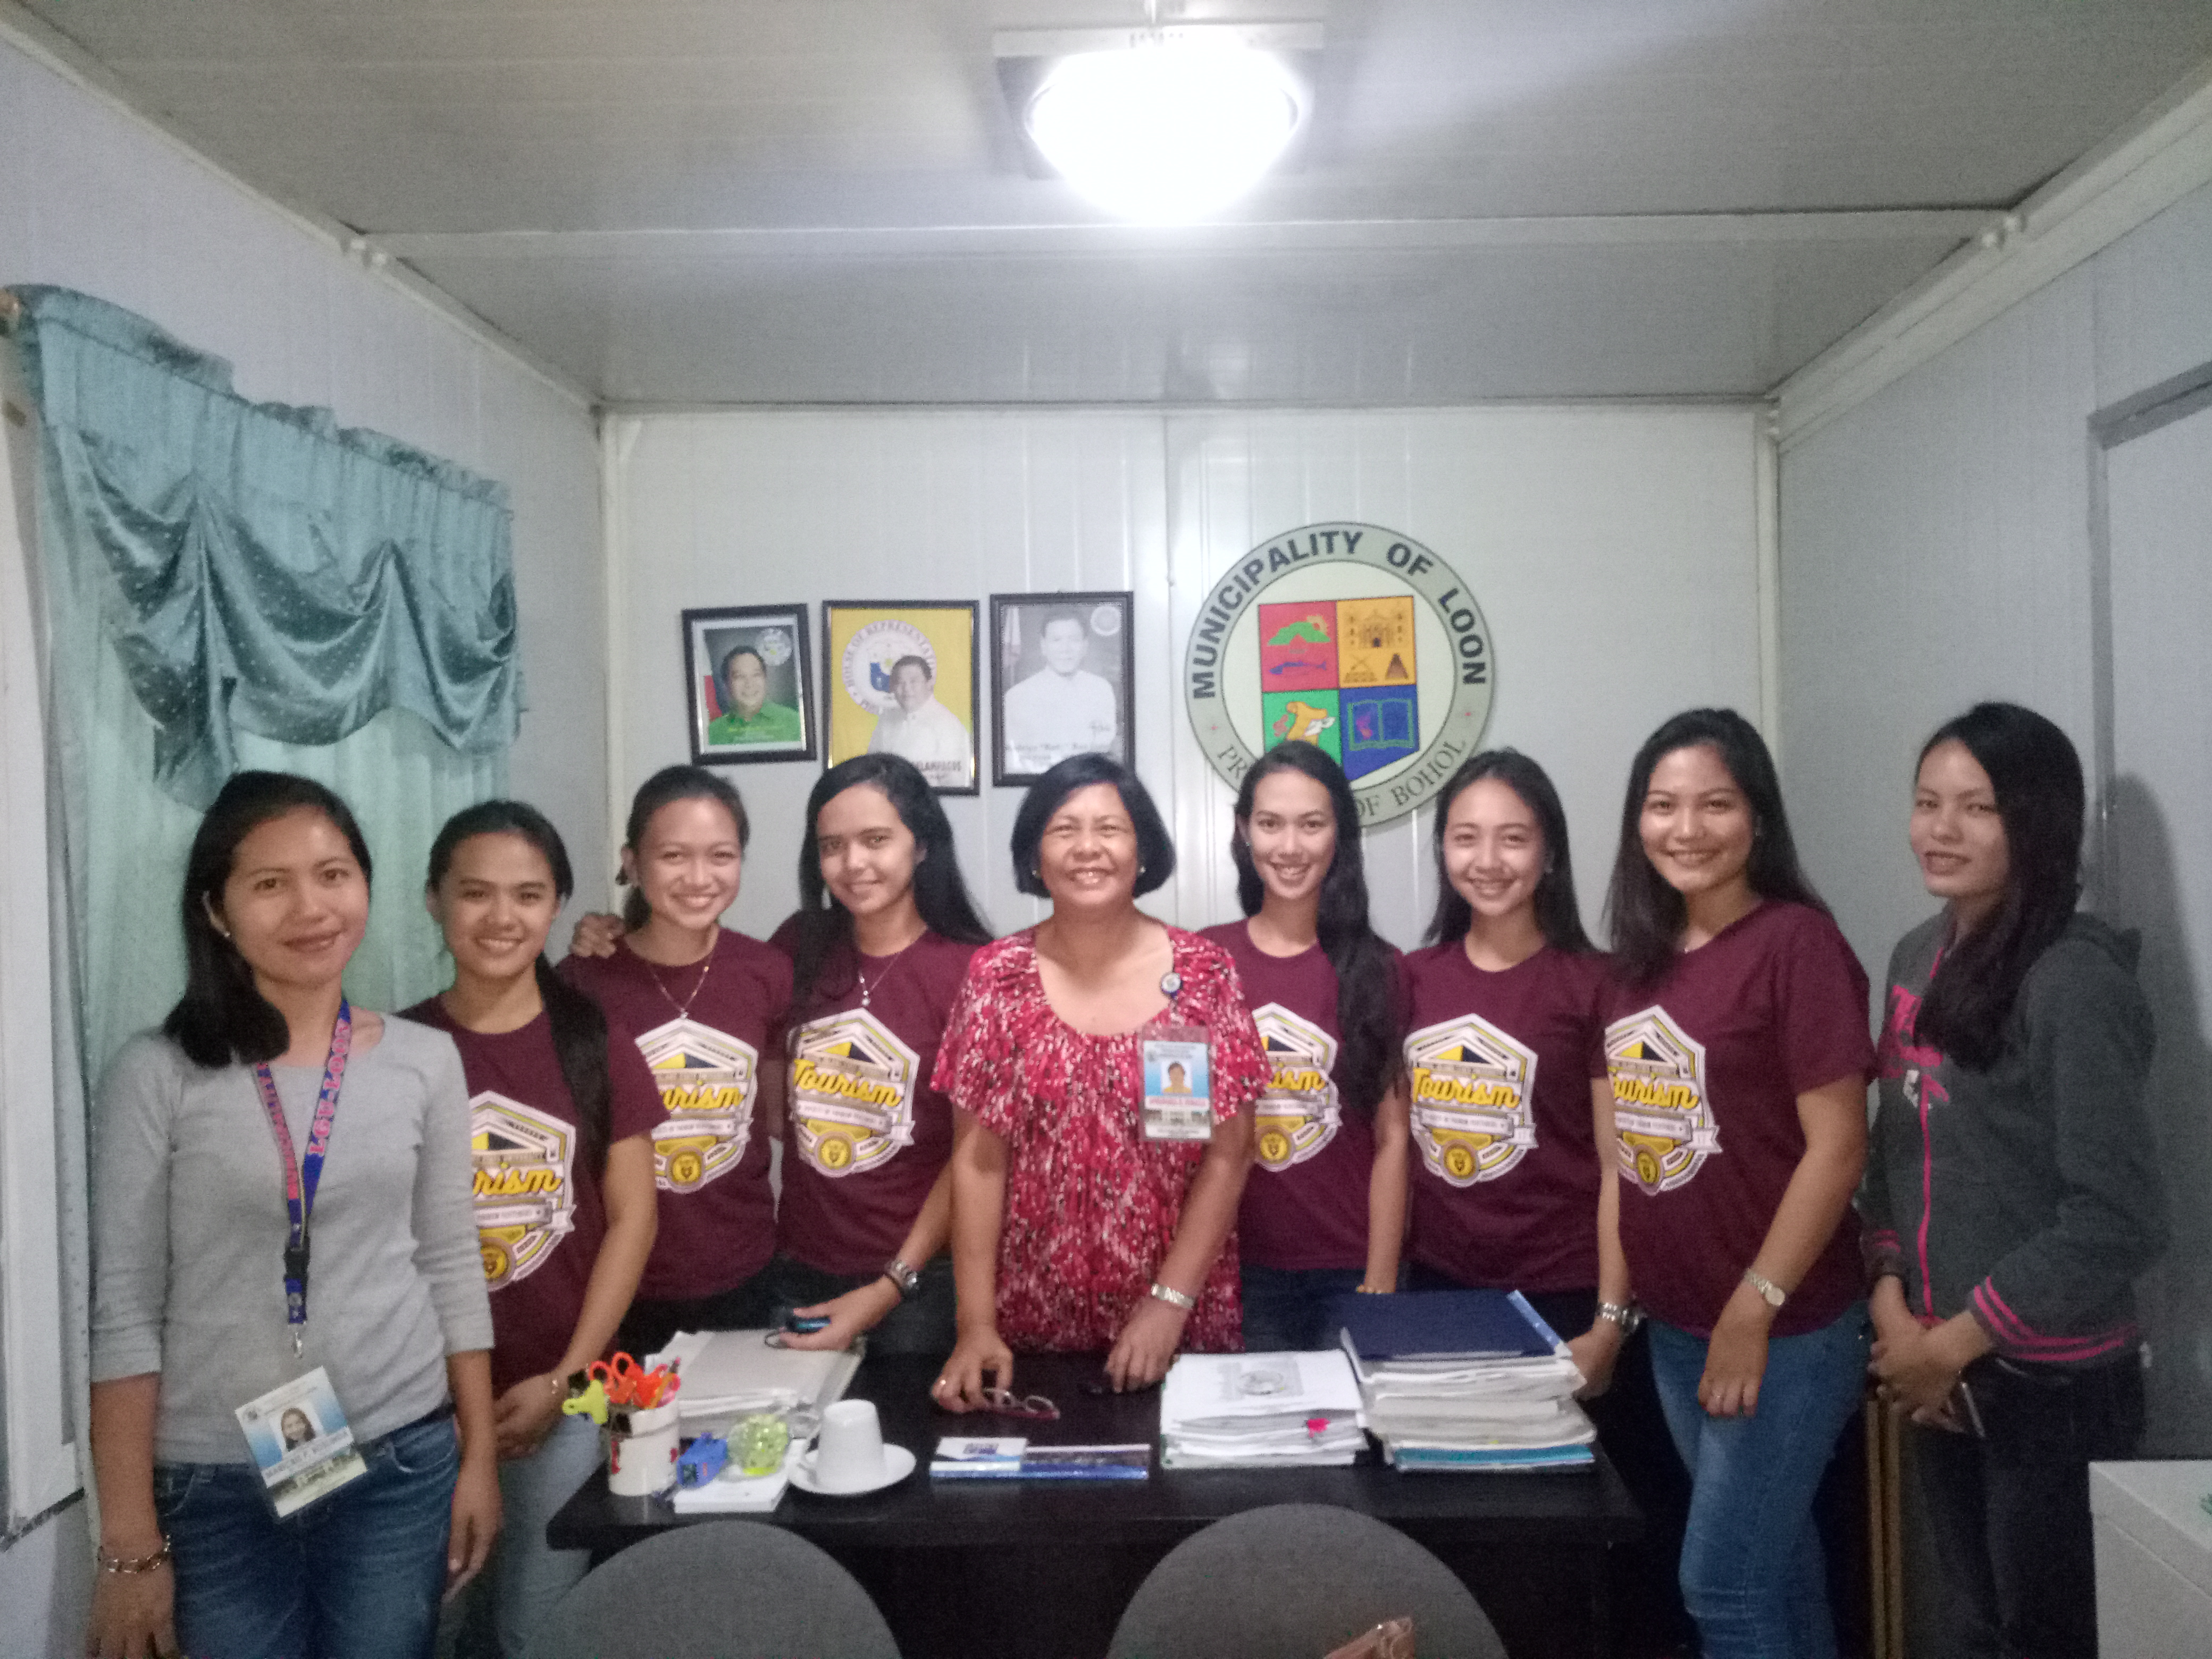 The Tourism students together with Apolinaria R. Guballa, Executive Assistant to the Mayor (Middle), Maricris Roslinda (Left) and the Tourism students: L-R: Krystil Jane Pacot, Angelica Mae Mawi, Azel Rose Indino, Christine Joy Mahumot, Ginaelle Idulsa, Jerrylyn Ampasin, Ashley Camille Bayron.